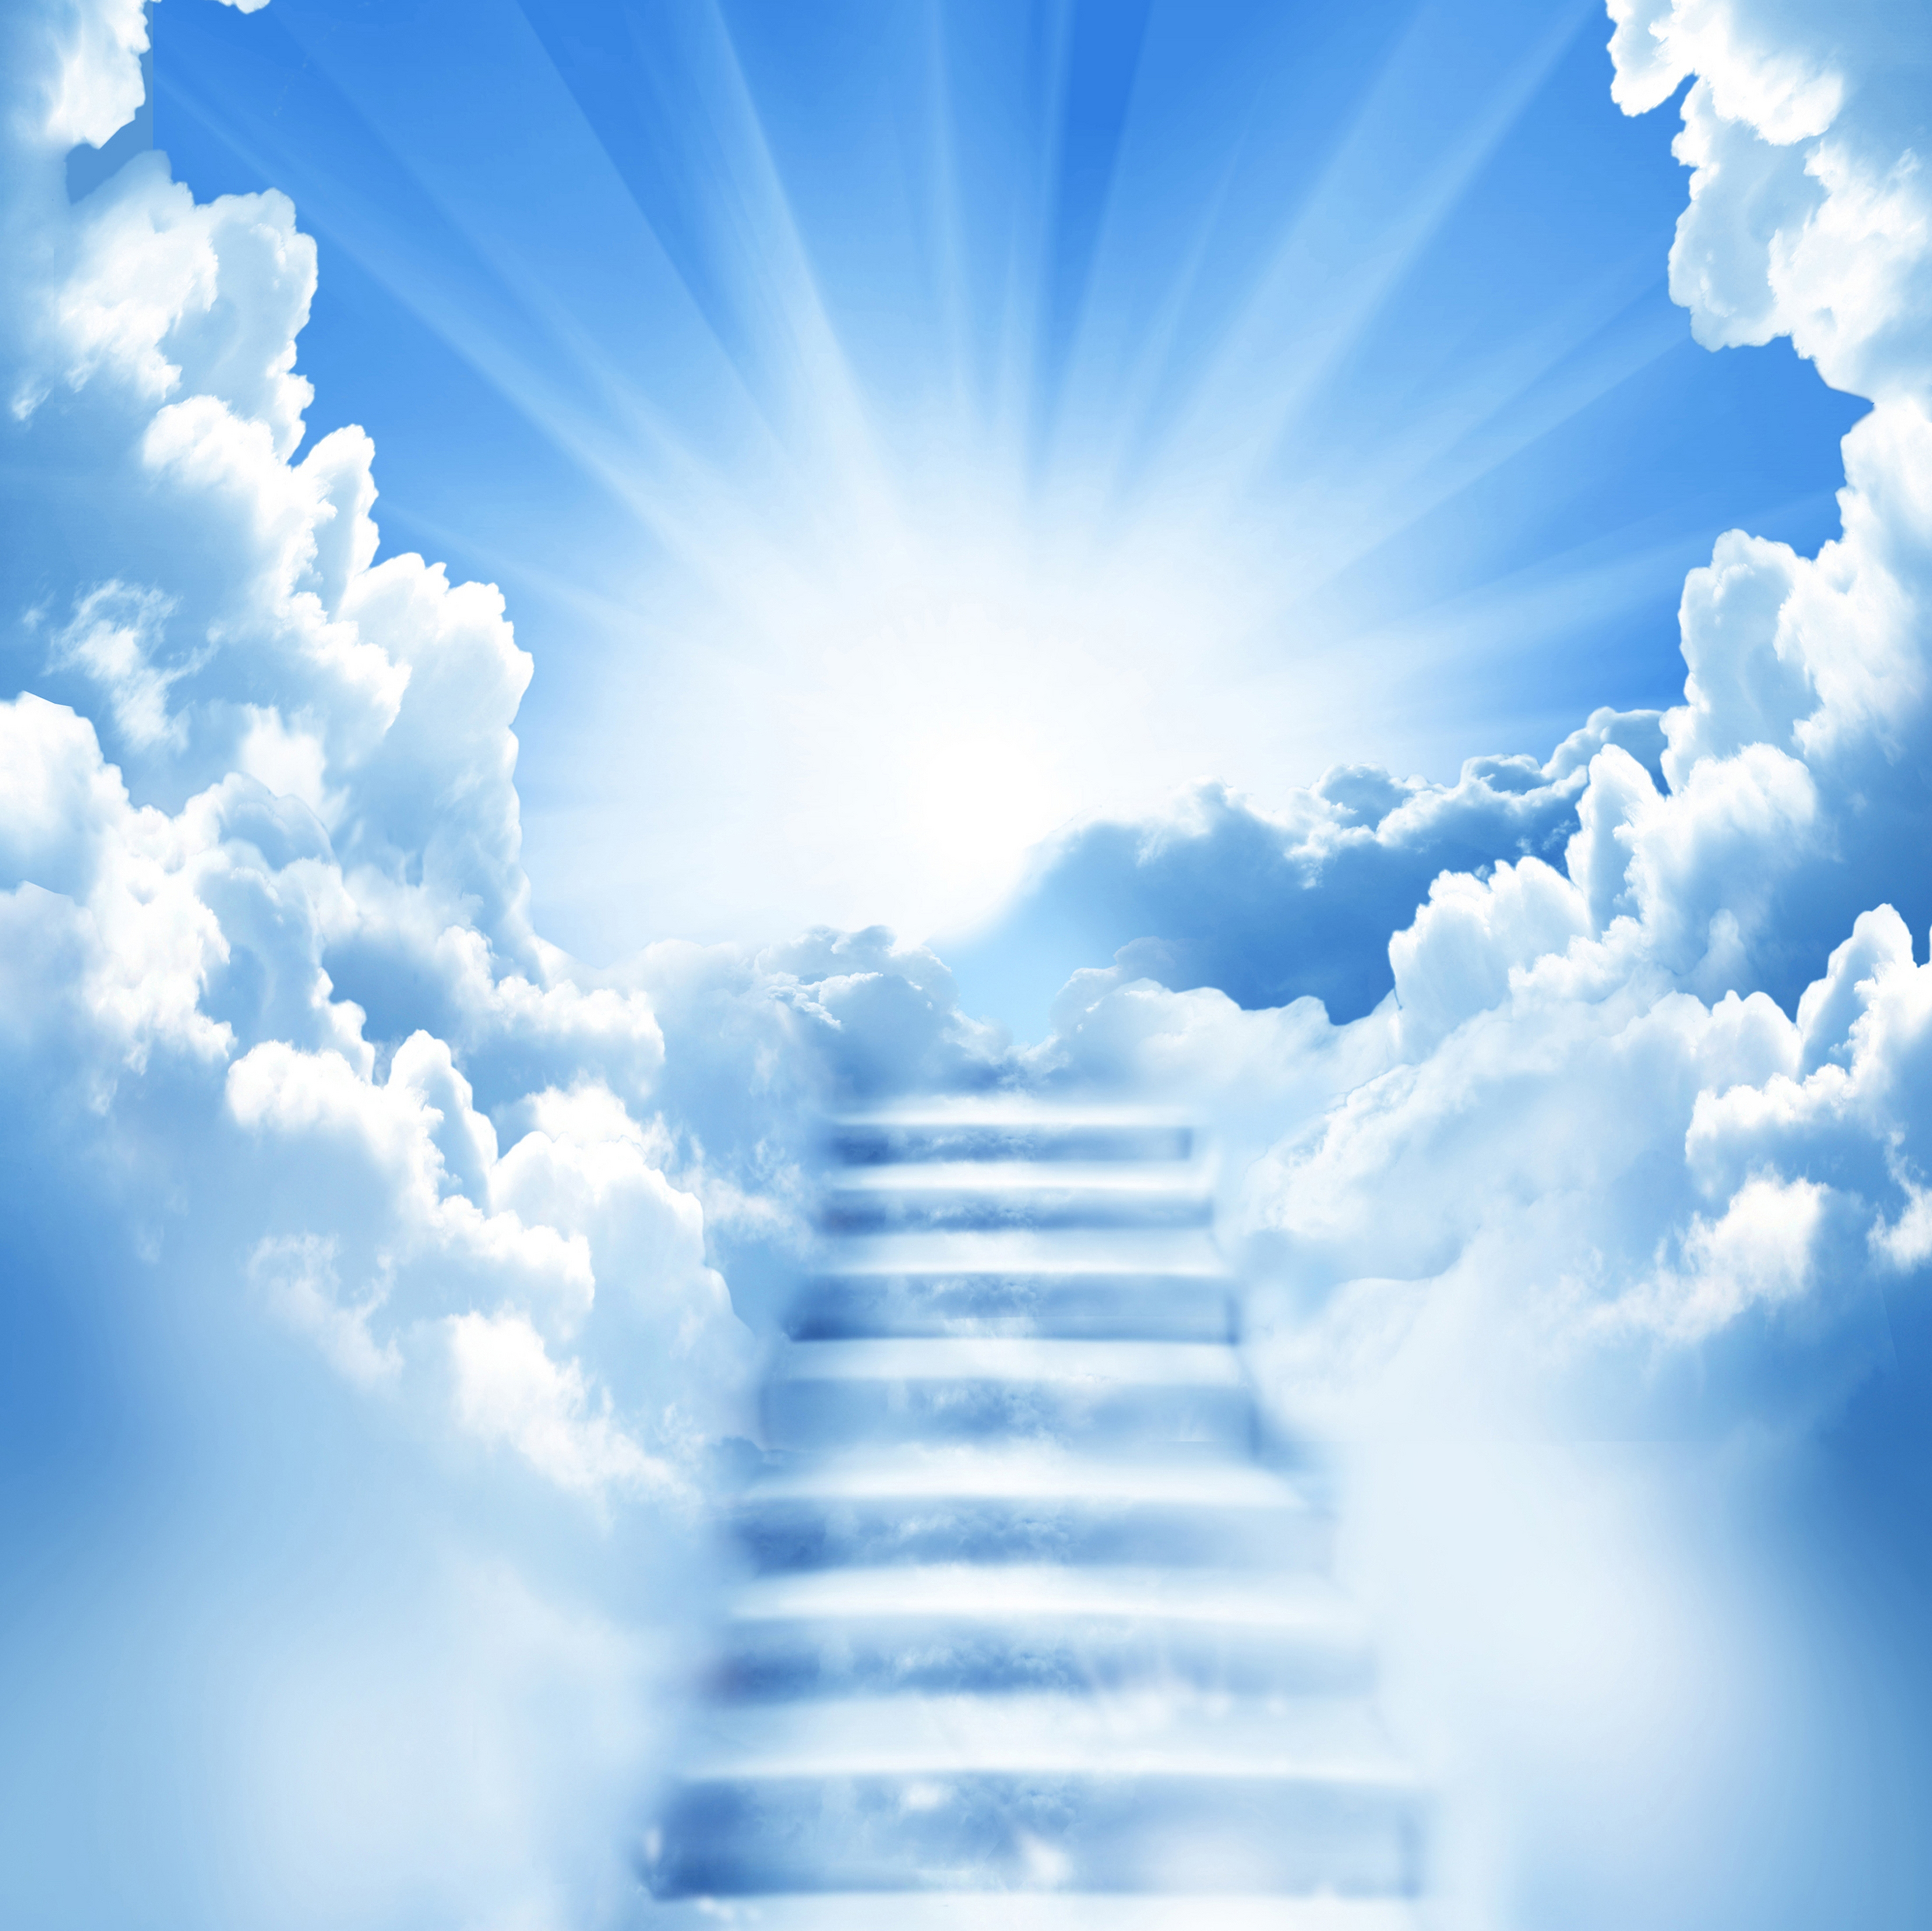 How to Get to Heaven from Earth